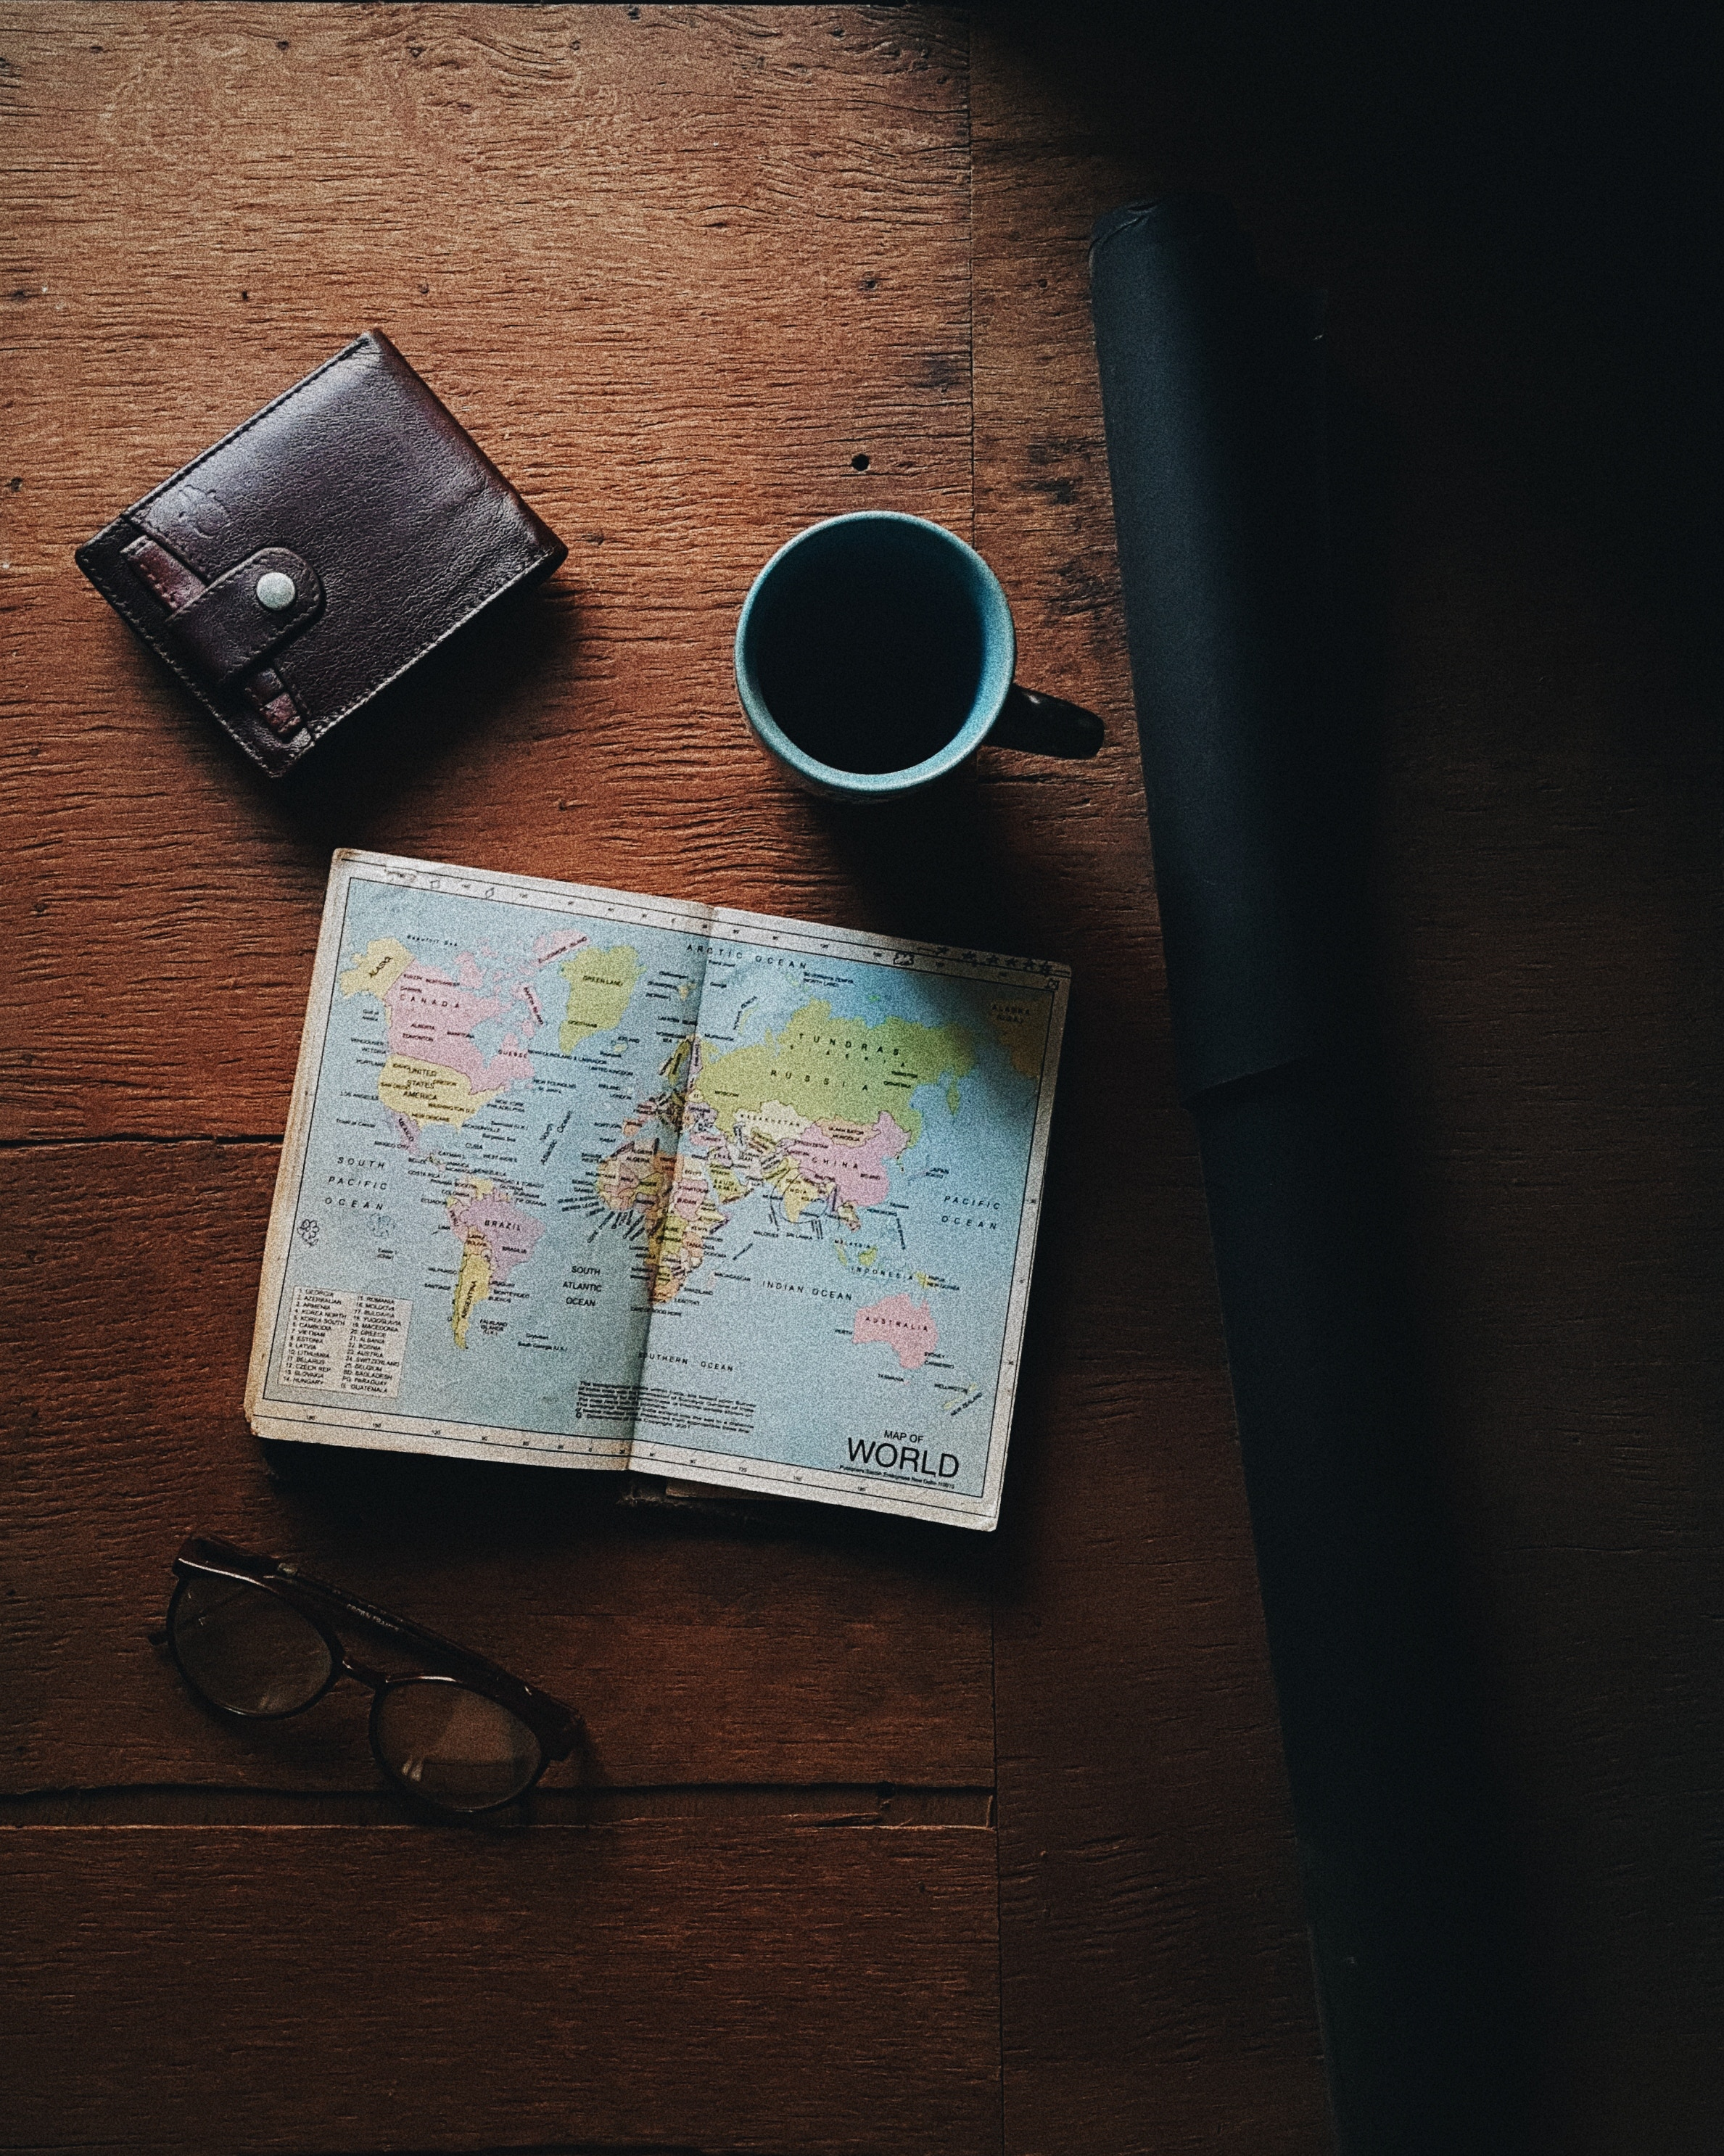 wooden table with a pocket sized world map with coffee mug